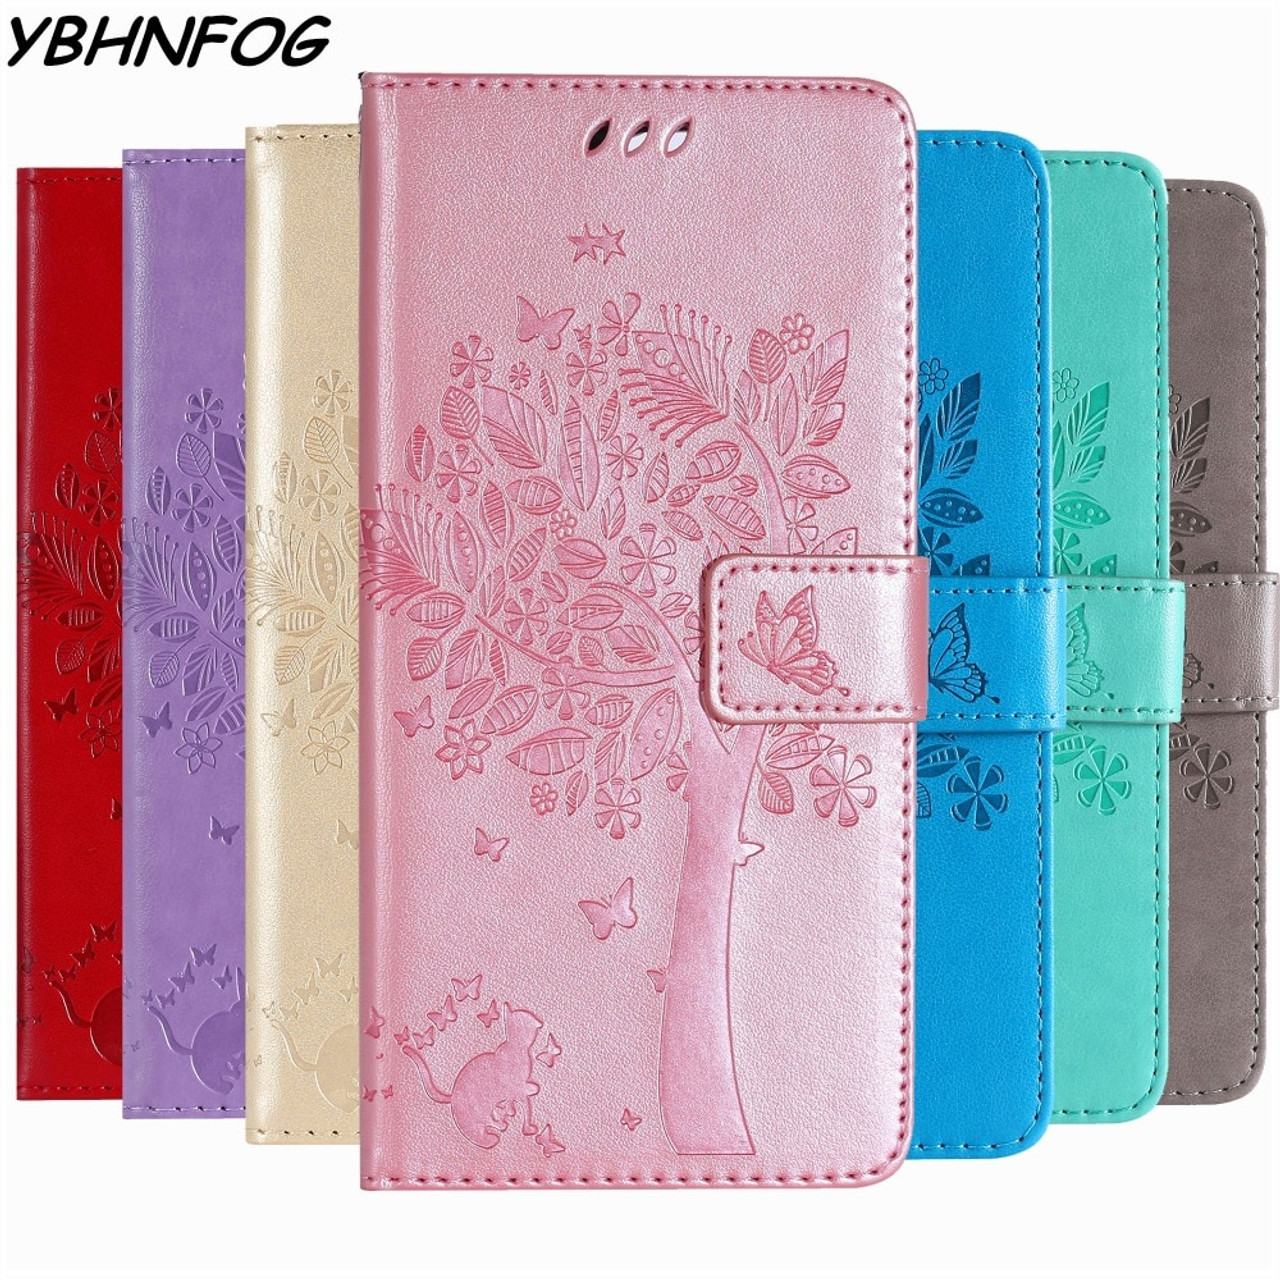 3f5b4448e46 ... PU Leather Flip Cover Wallet Phone Case For Coque Samsung Galaxy J4 J6  A6 A8 Plus ...